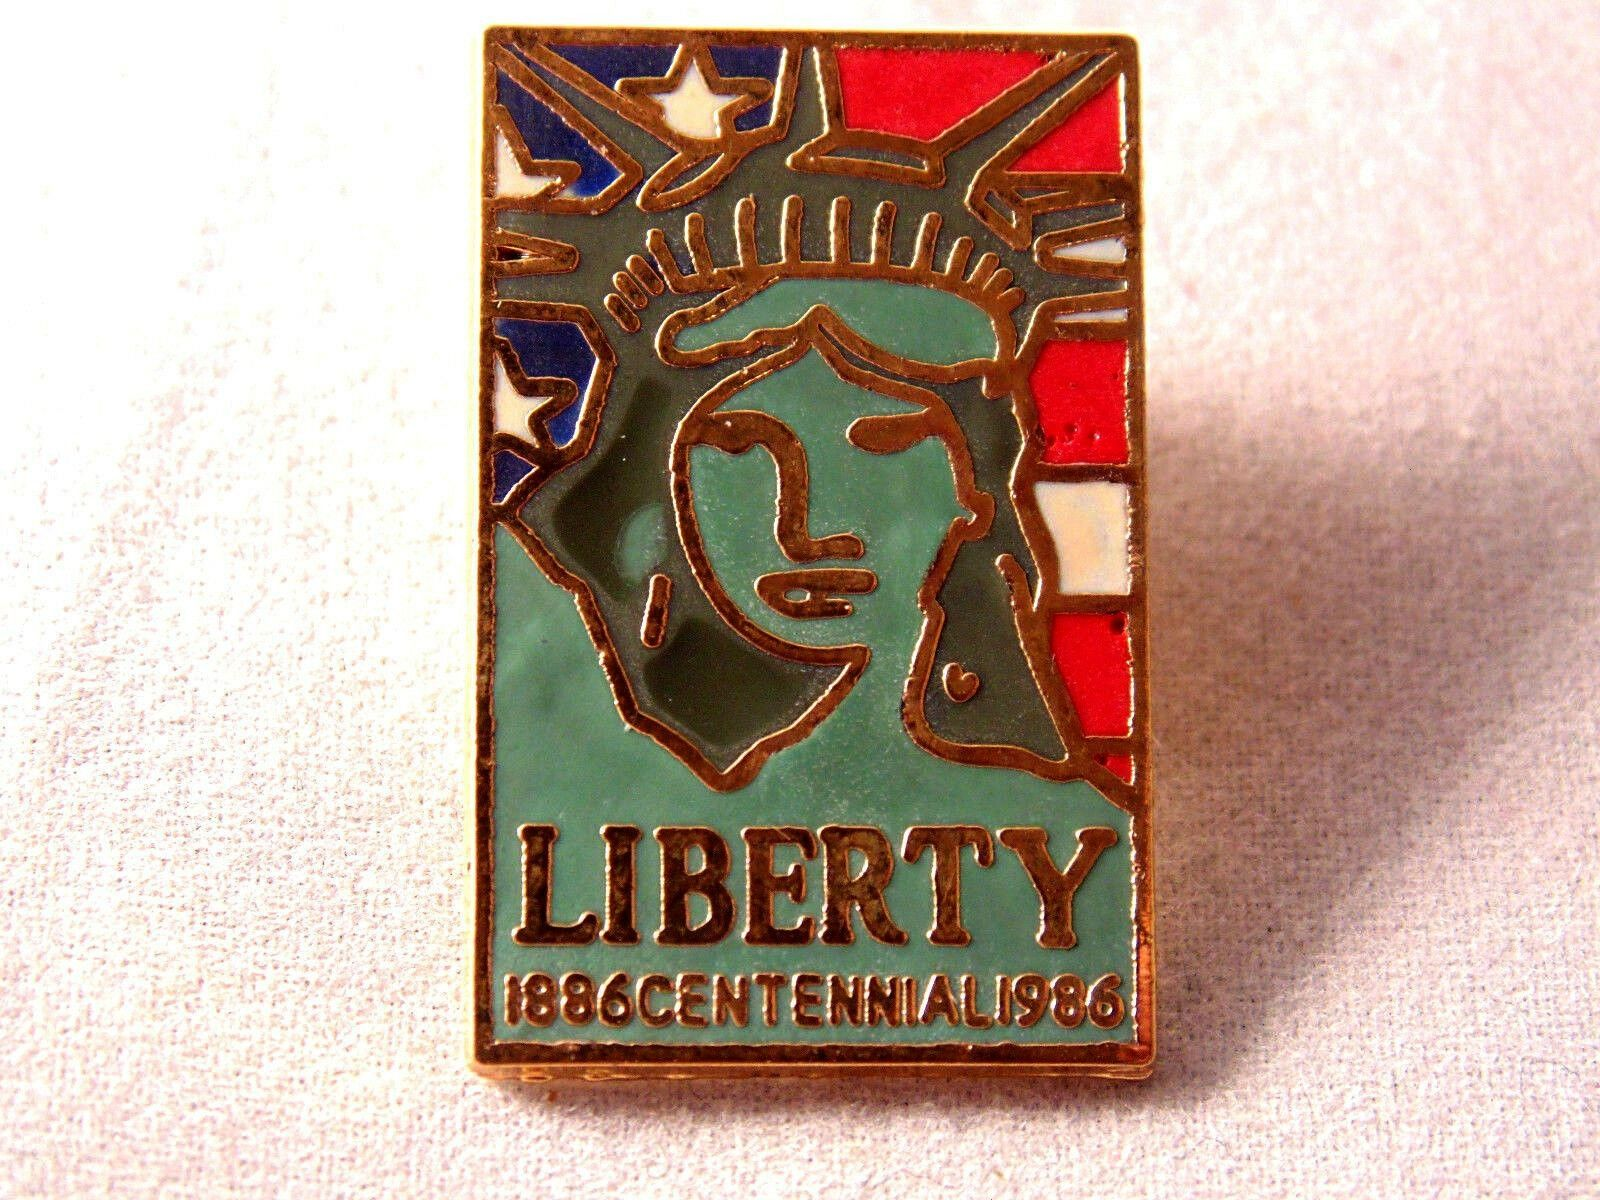 1886 Centennial 1986 Lapel Pin Collectible Pinback Statue New York USA Liberty 1886 Centennial 1986 Lapel Pin Features Lady Liberty and The American Flag in the backgroun...